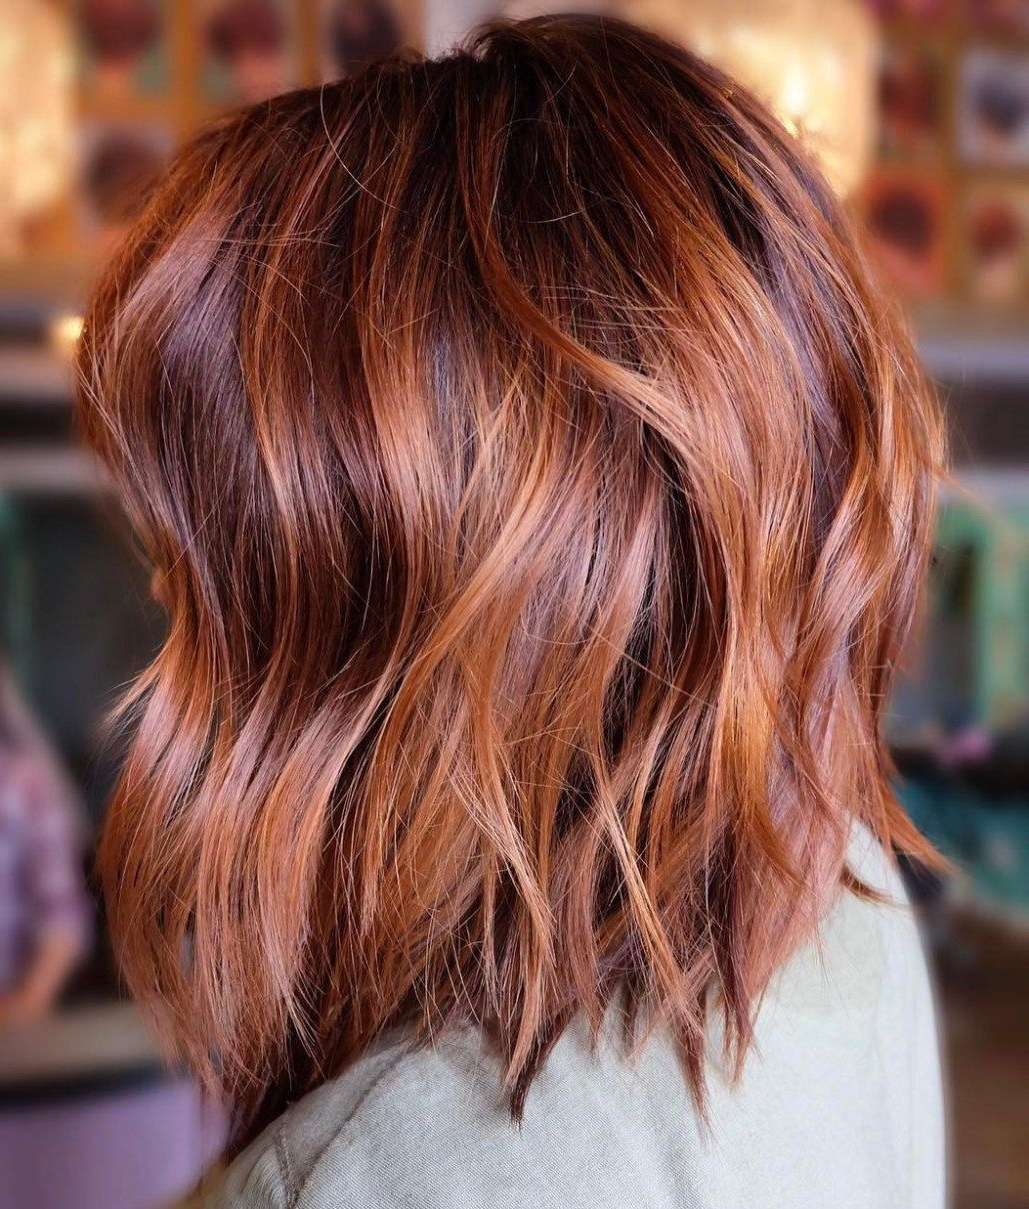 Pin On Hair Envy With Balayage Highlights For Long Bob Hairstyles (View 7 of 20)